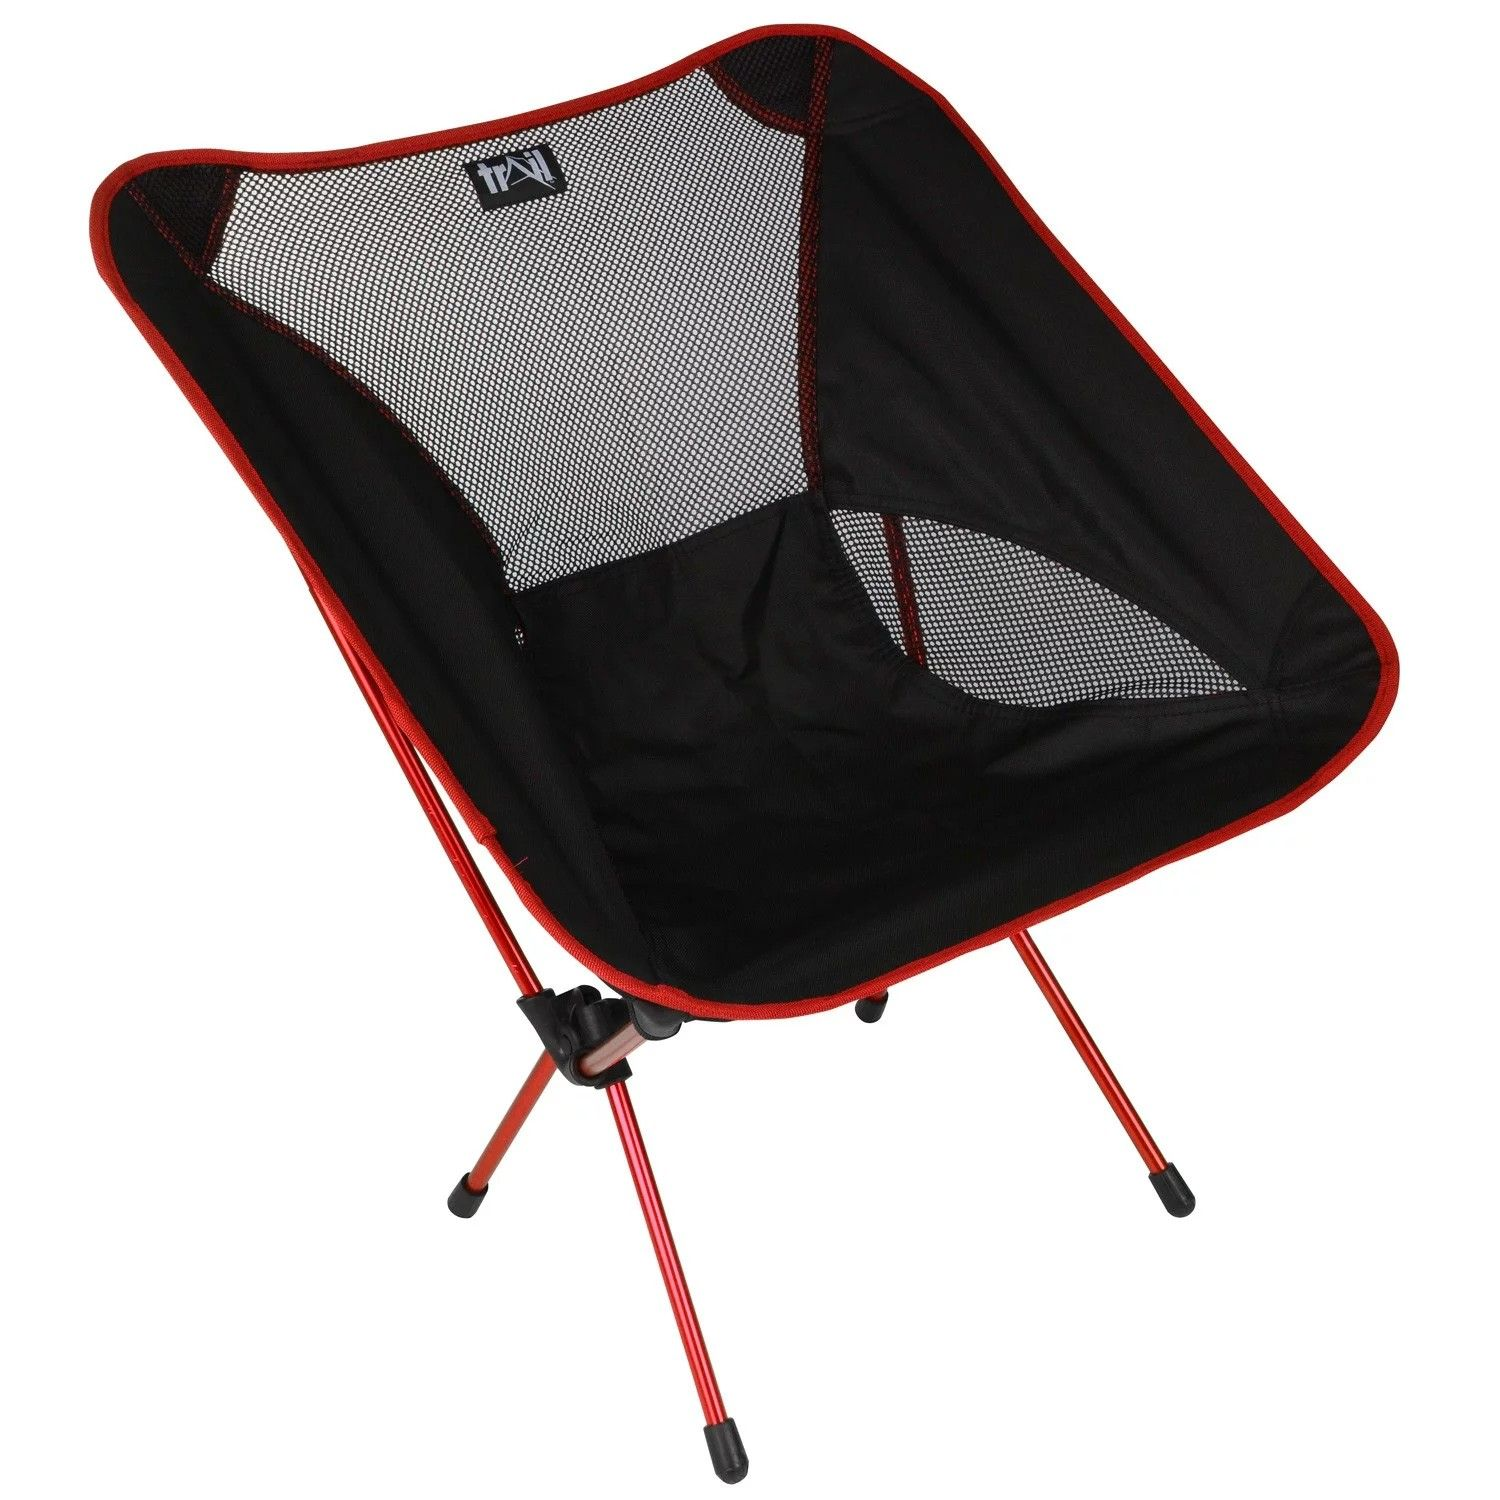 fce6f553a75 Trail s lightest camping chair weighs 1kg to take on any adventure. Easy to  set up – elasticated poles click into place. Durable aluminium frame with  ...